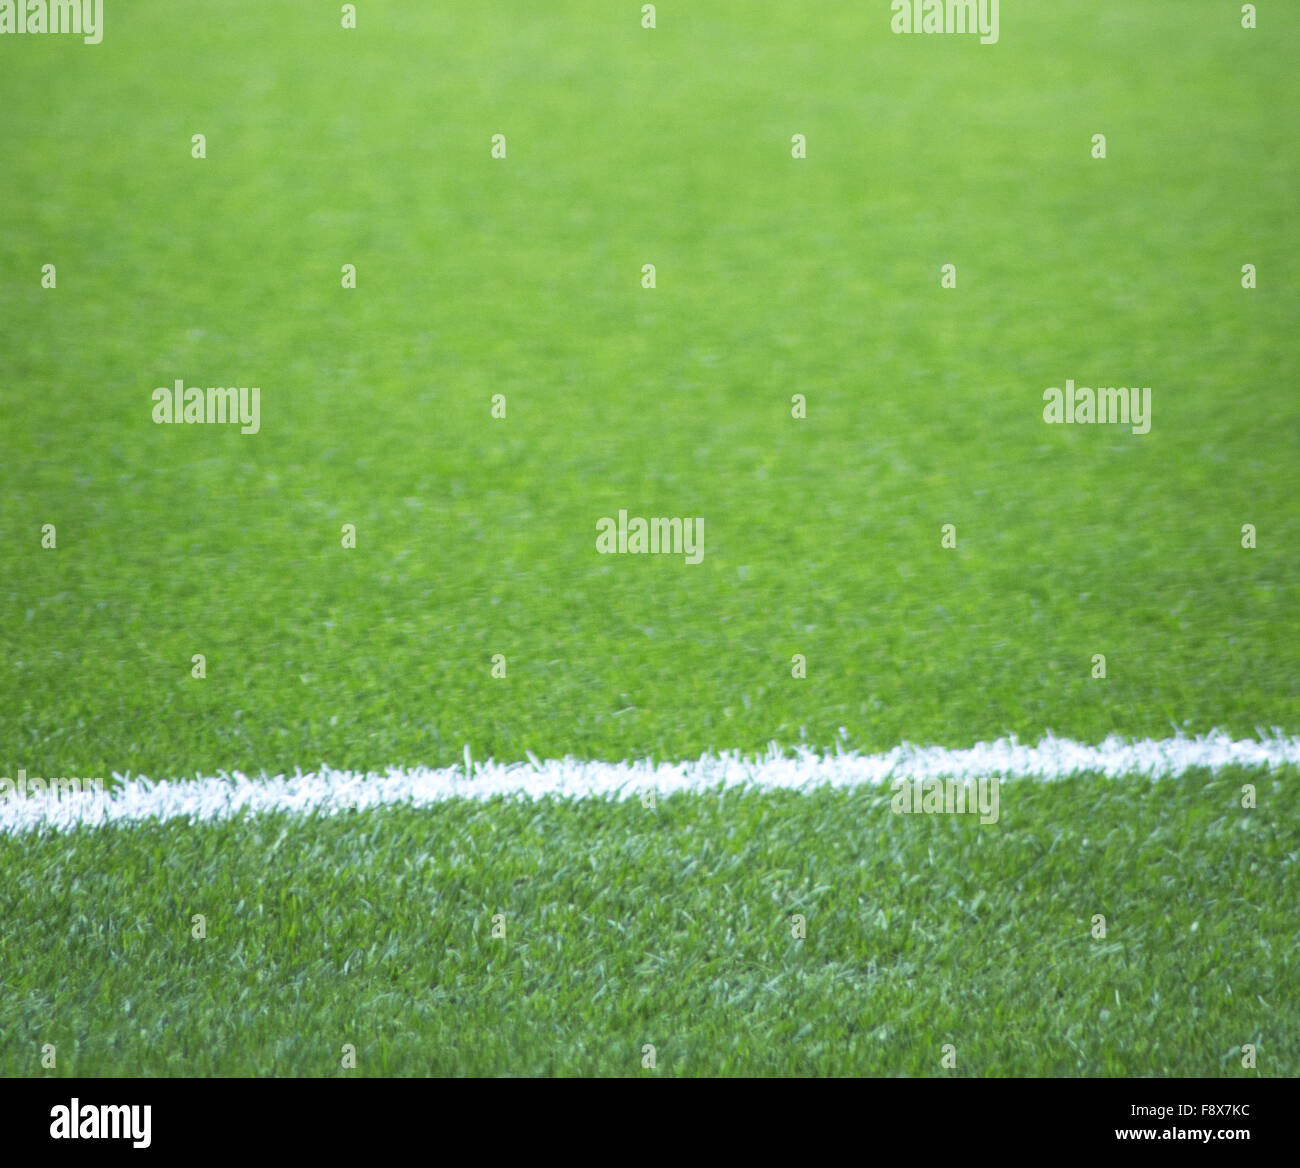 Soccer football pitch white line and grass. - Stock Image